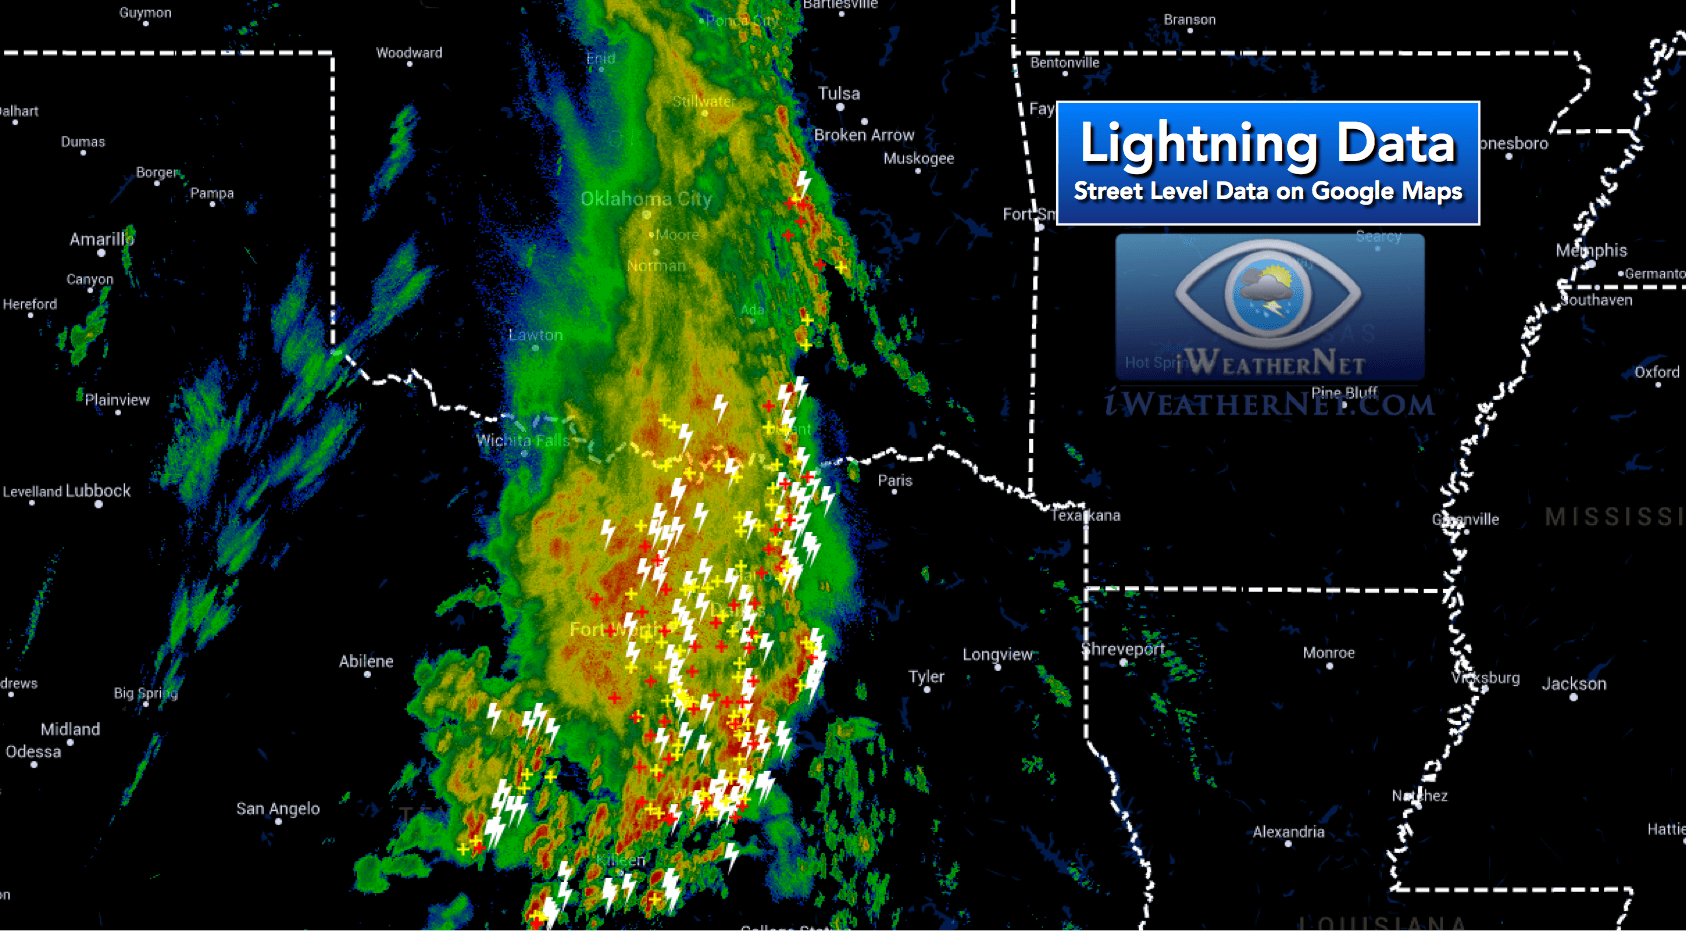 Lightning Strike Map Colorado Latest Lightning Strikes on Google Maps – iWeatherNet